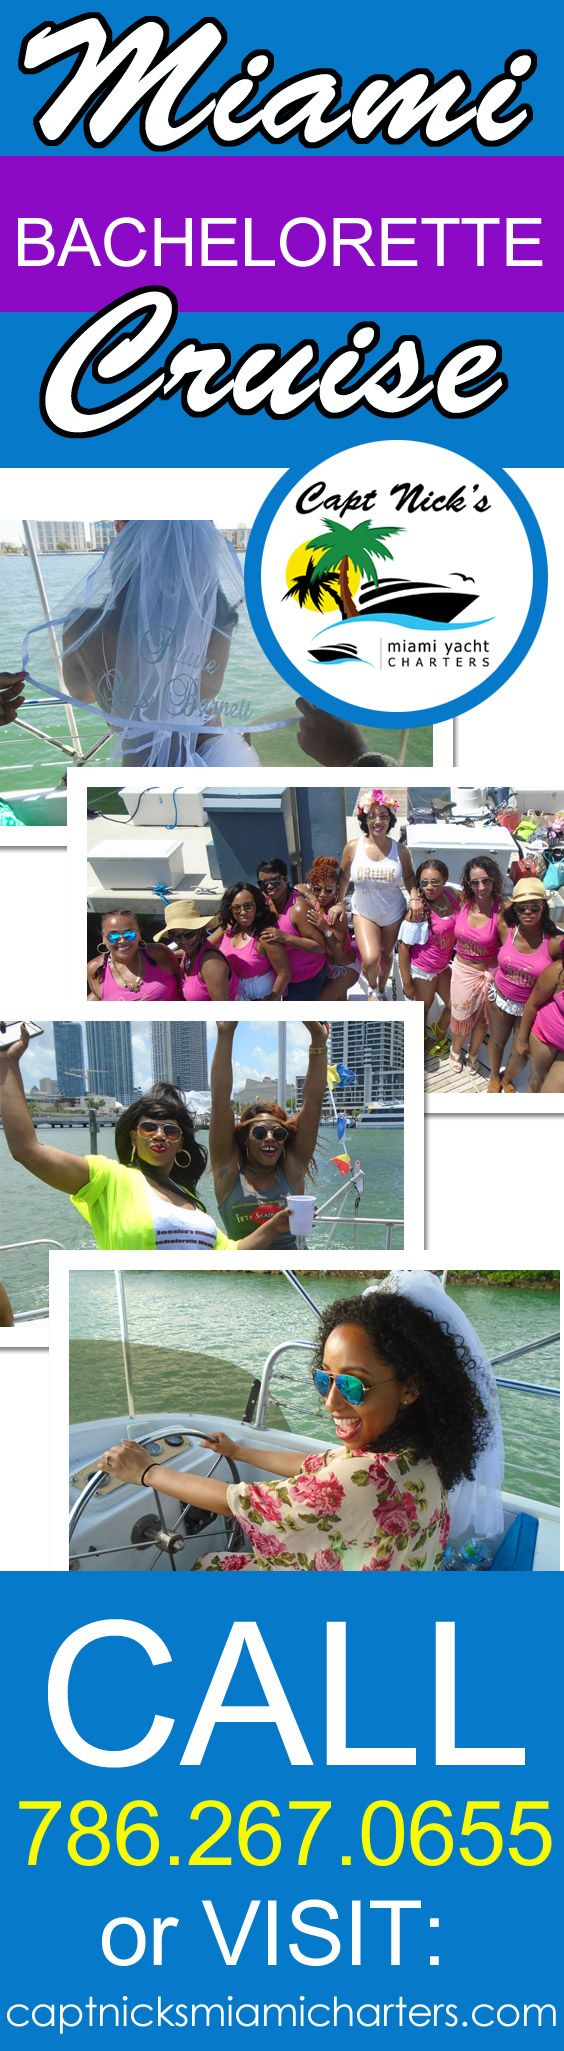 Celebrate Bachelorette Party in Style - Cruising Miami. More Info: http://www.captnicksmiamicharters.com OR Call 786.267.0655